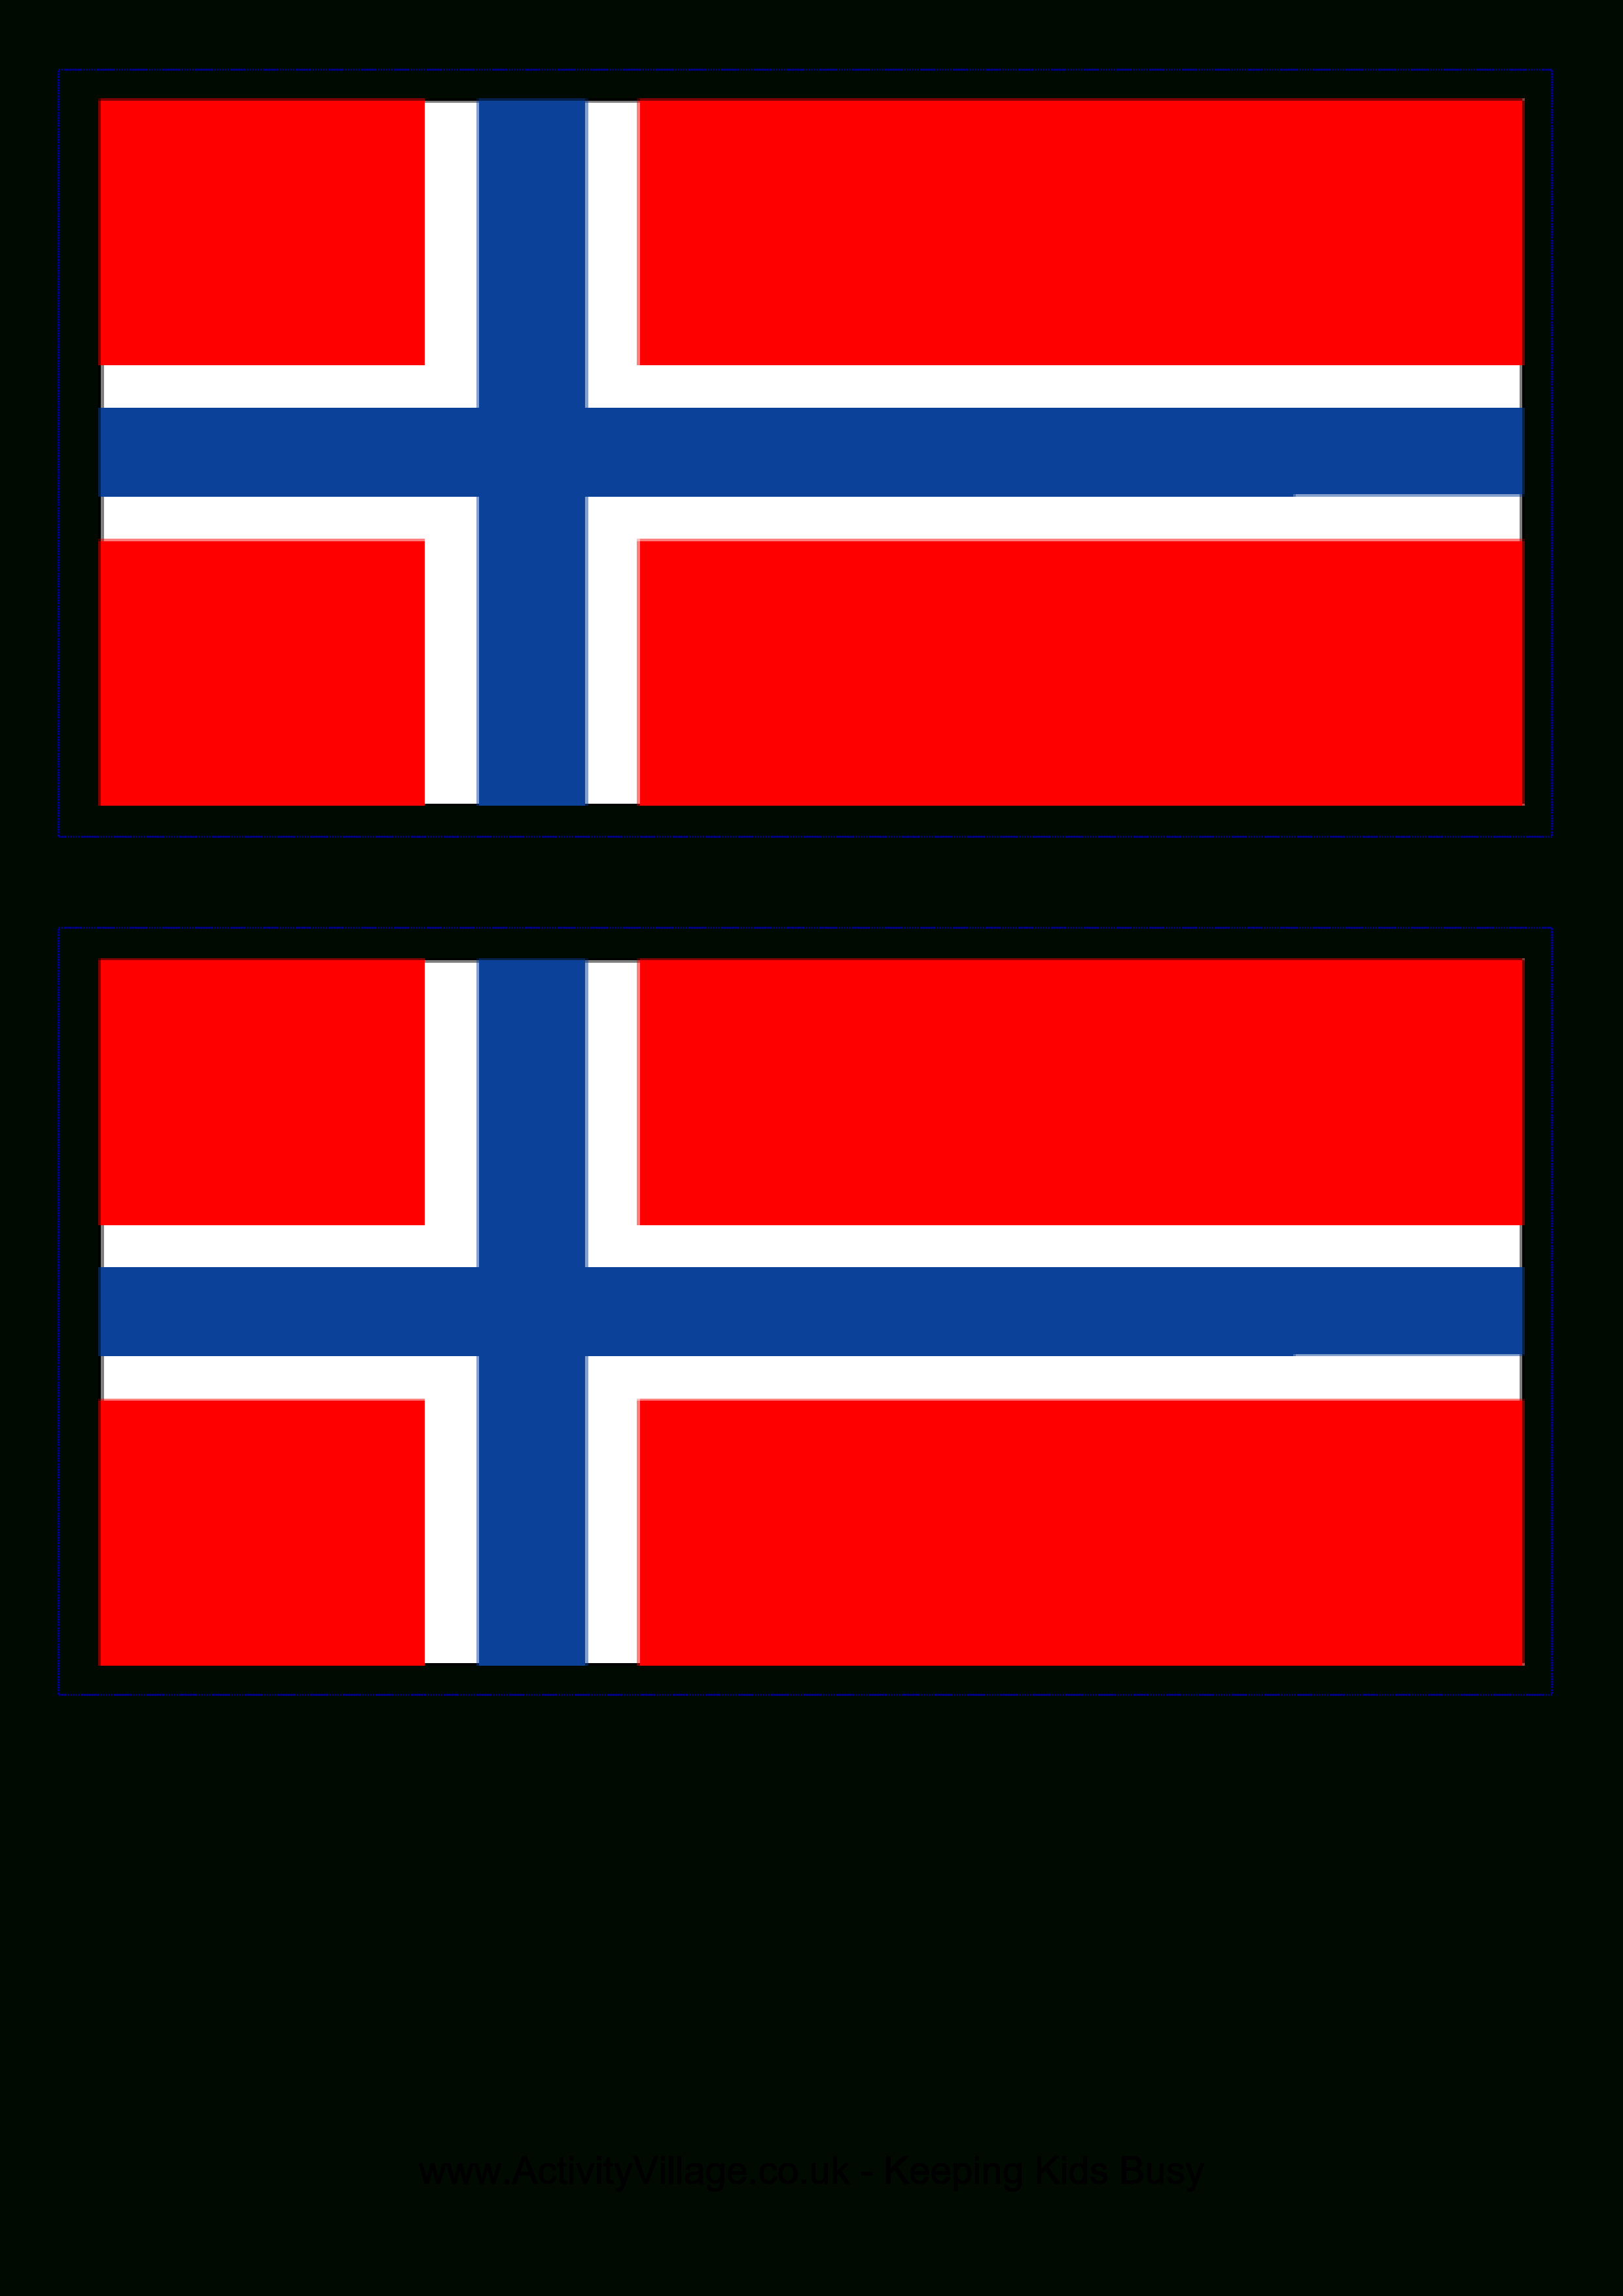 Norwegian Flag - Download This Free Printable Norwegian Template A4 - Free Printable Pictures Of Flags Of The World